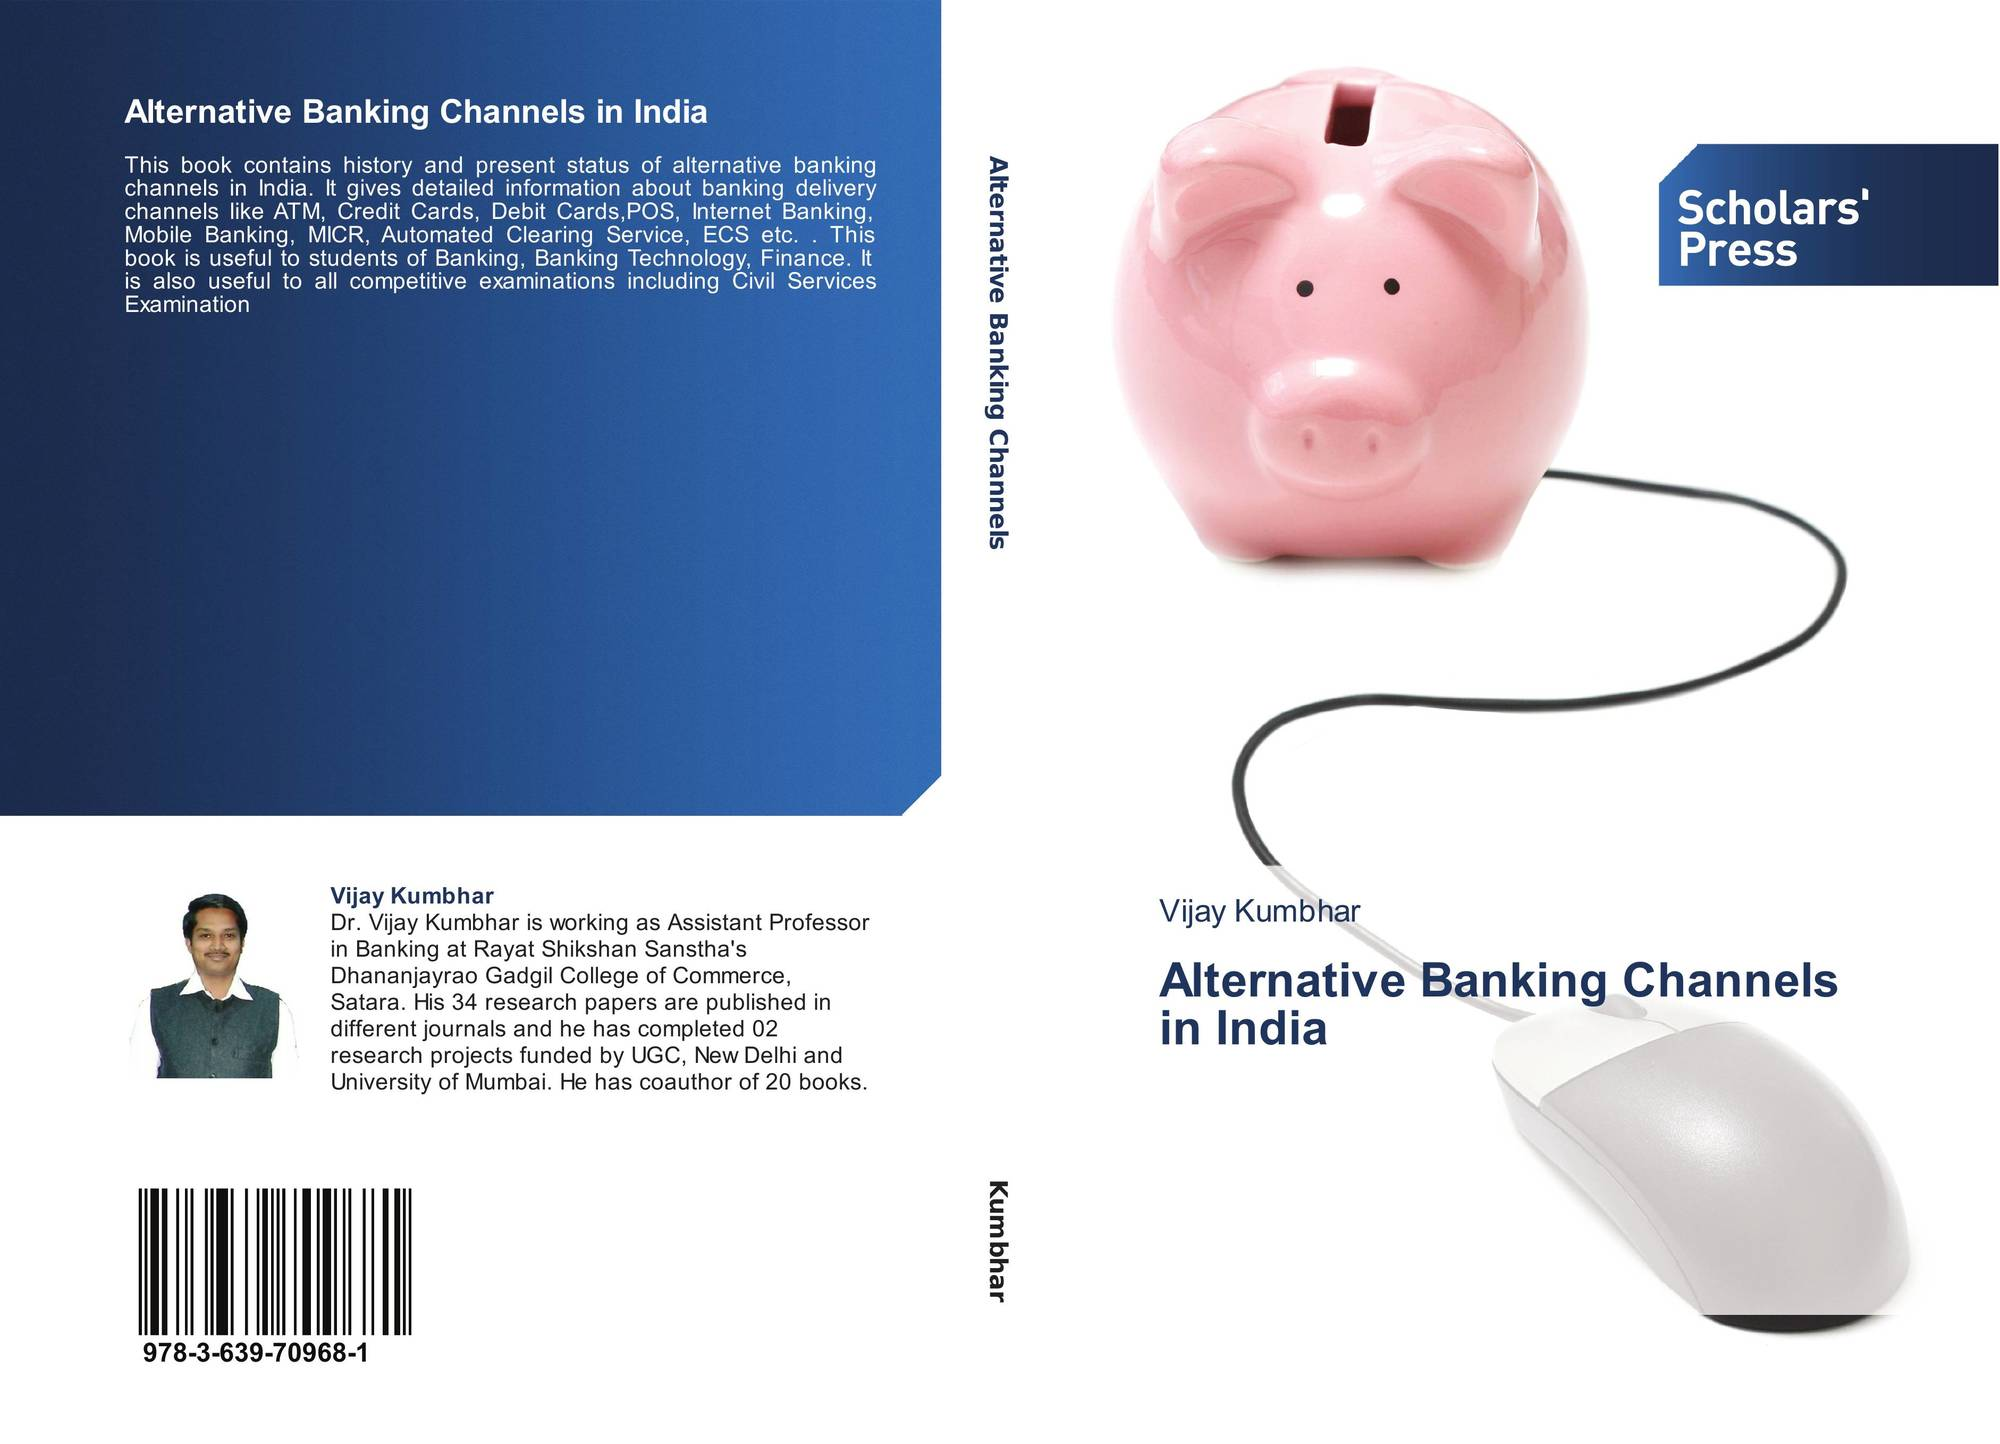 popularisation of alternate channels in banking sector